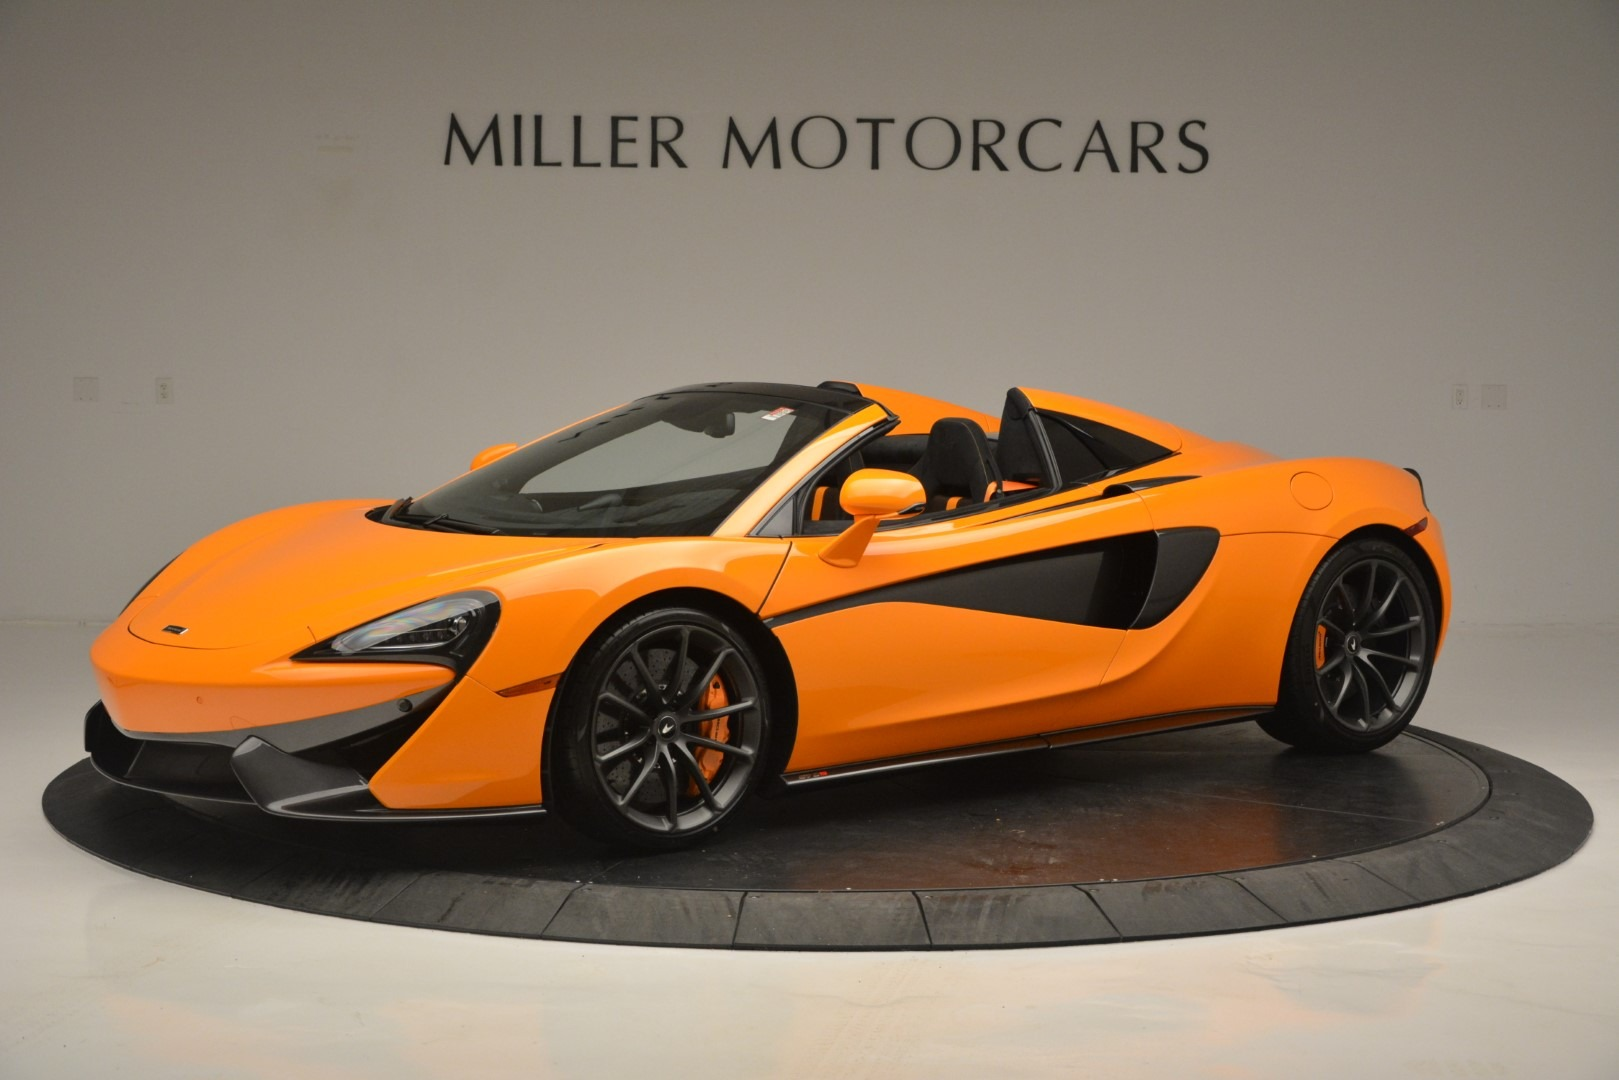 Used 2019 McLaren 570S SPIDER Convertible for sale $240,720 at Bentley Greenwich in Greenwich CT 06830 1